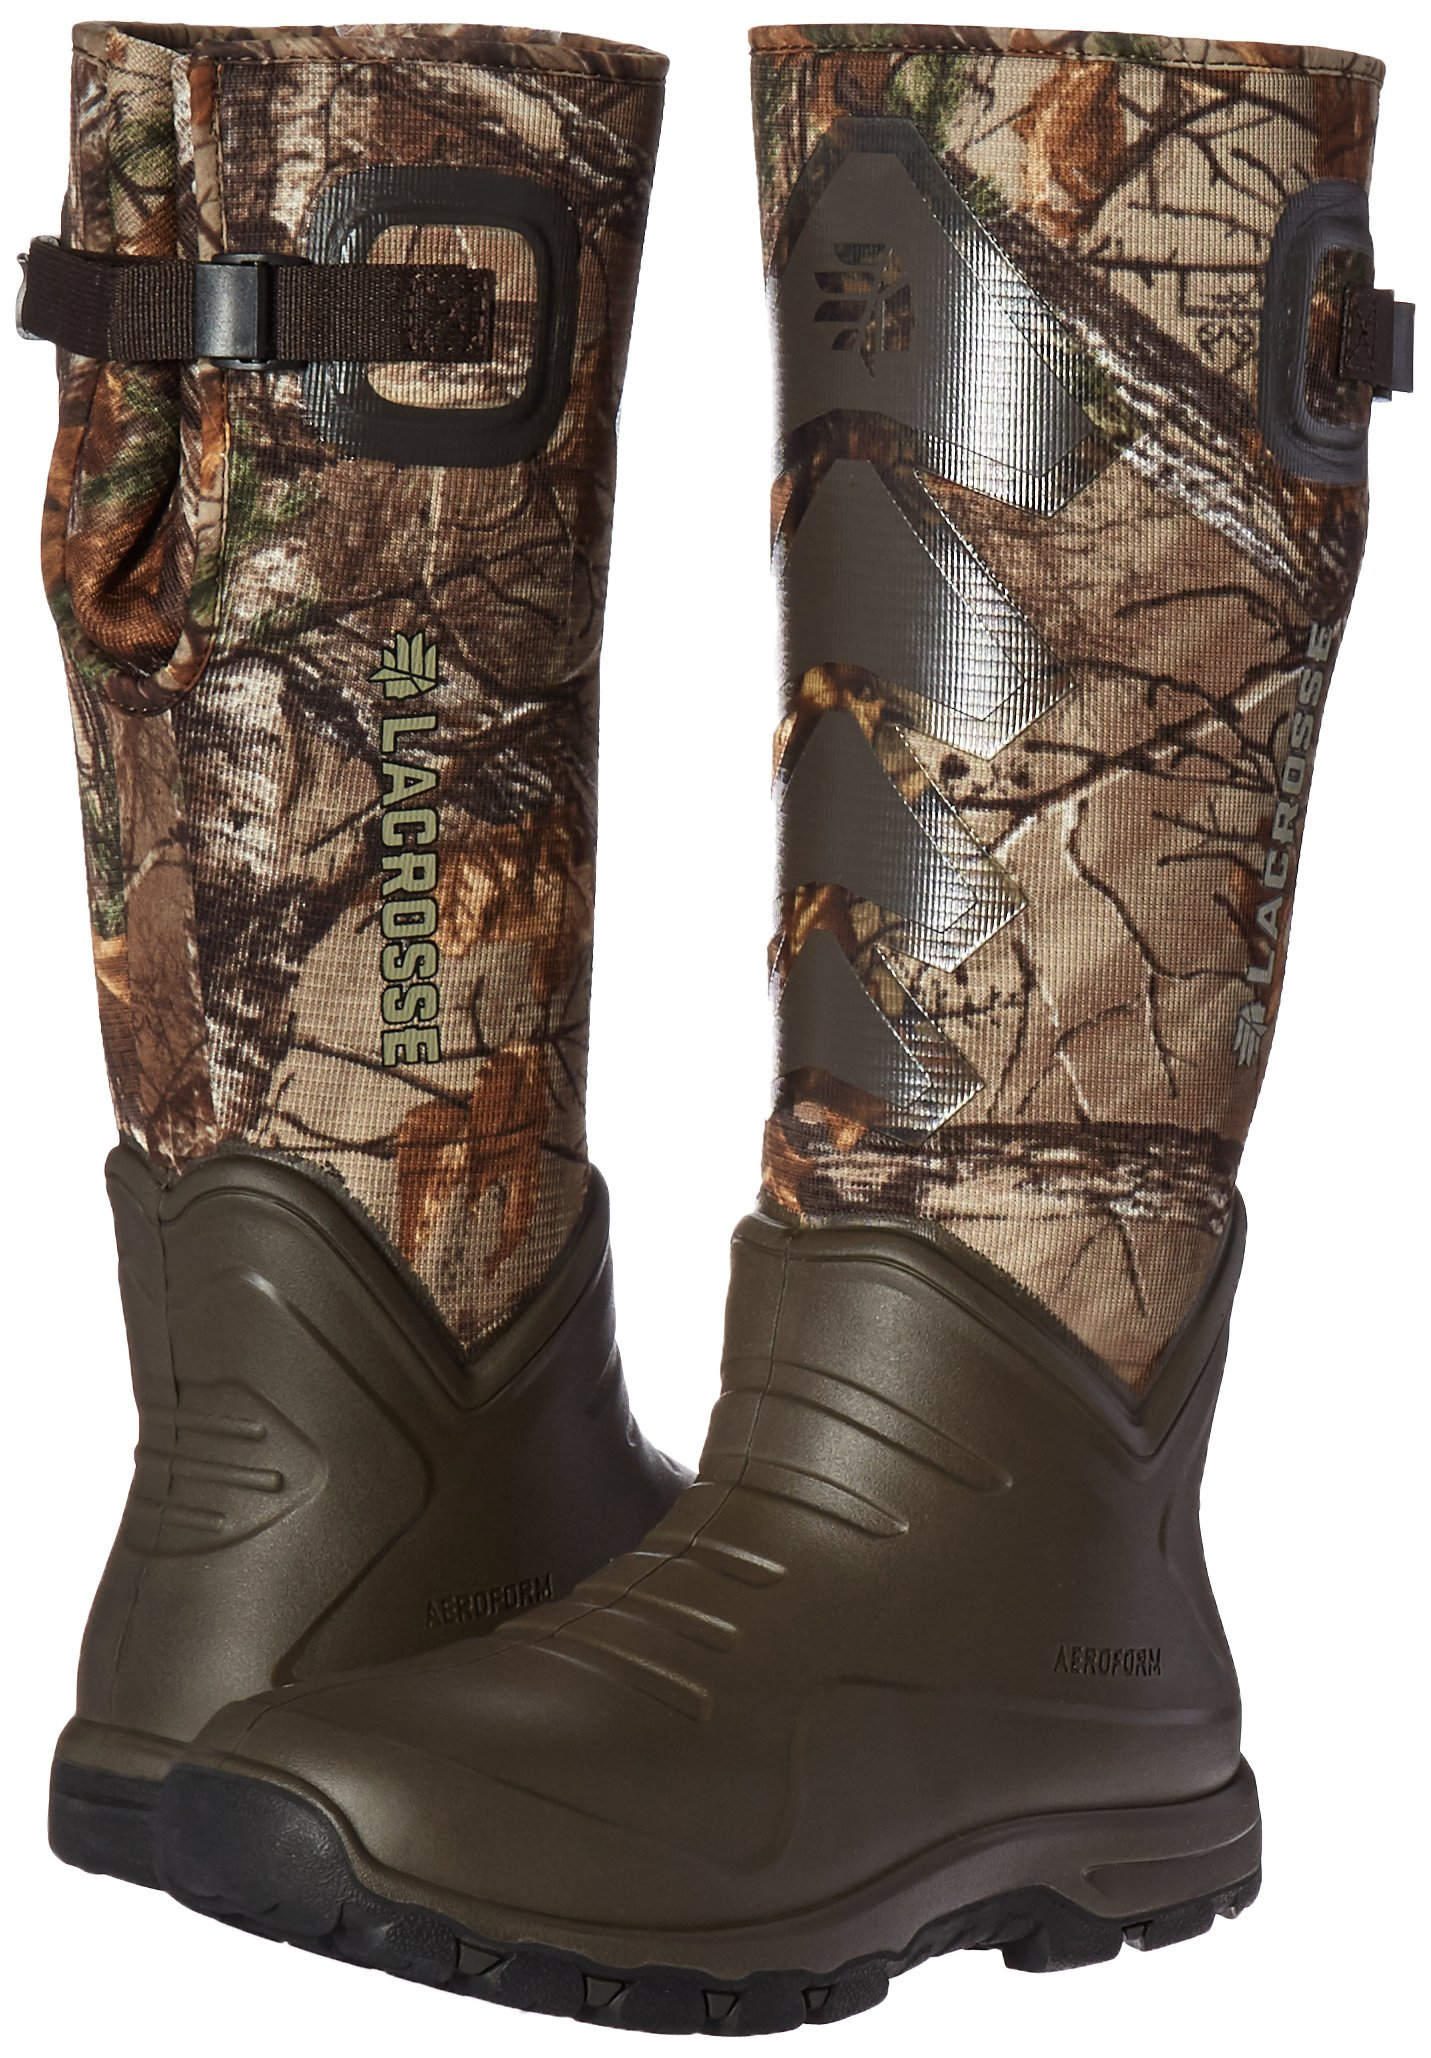 Lacrosse Men's Aerohead Sport 16'' 3.5MM Hunting Shoes Realtree Extra 13 M US by Lacrosse (Image #6)